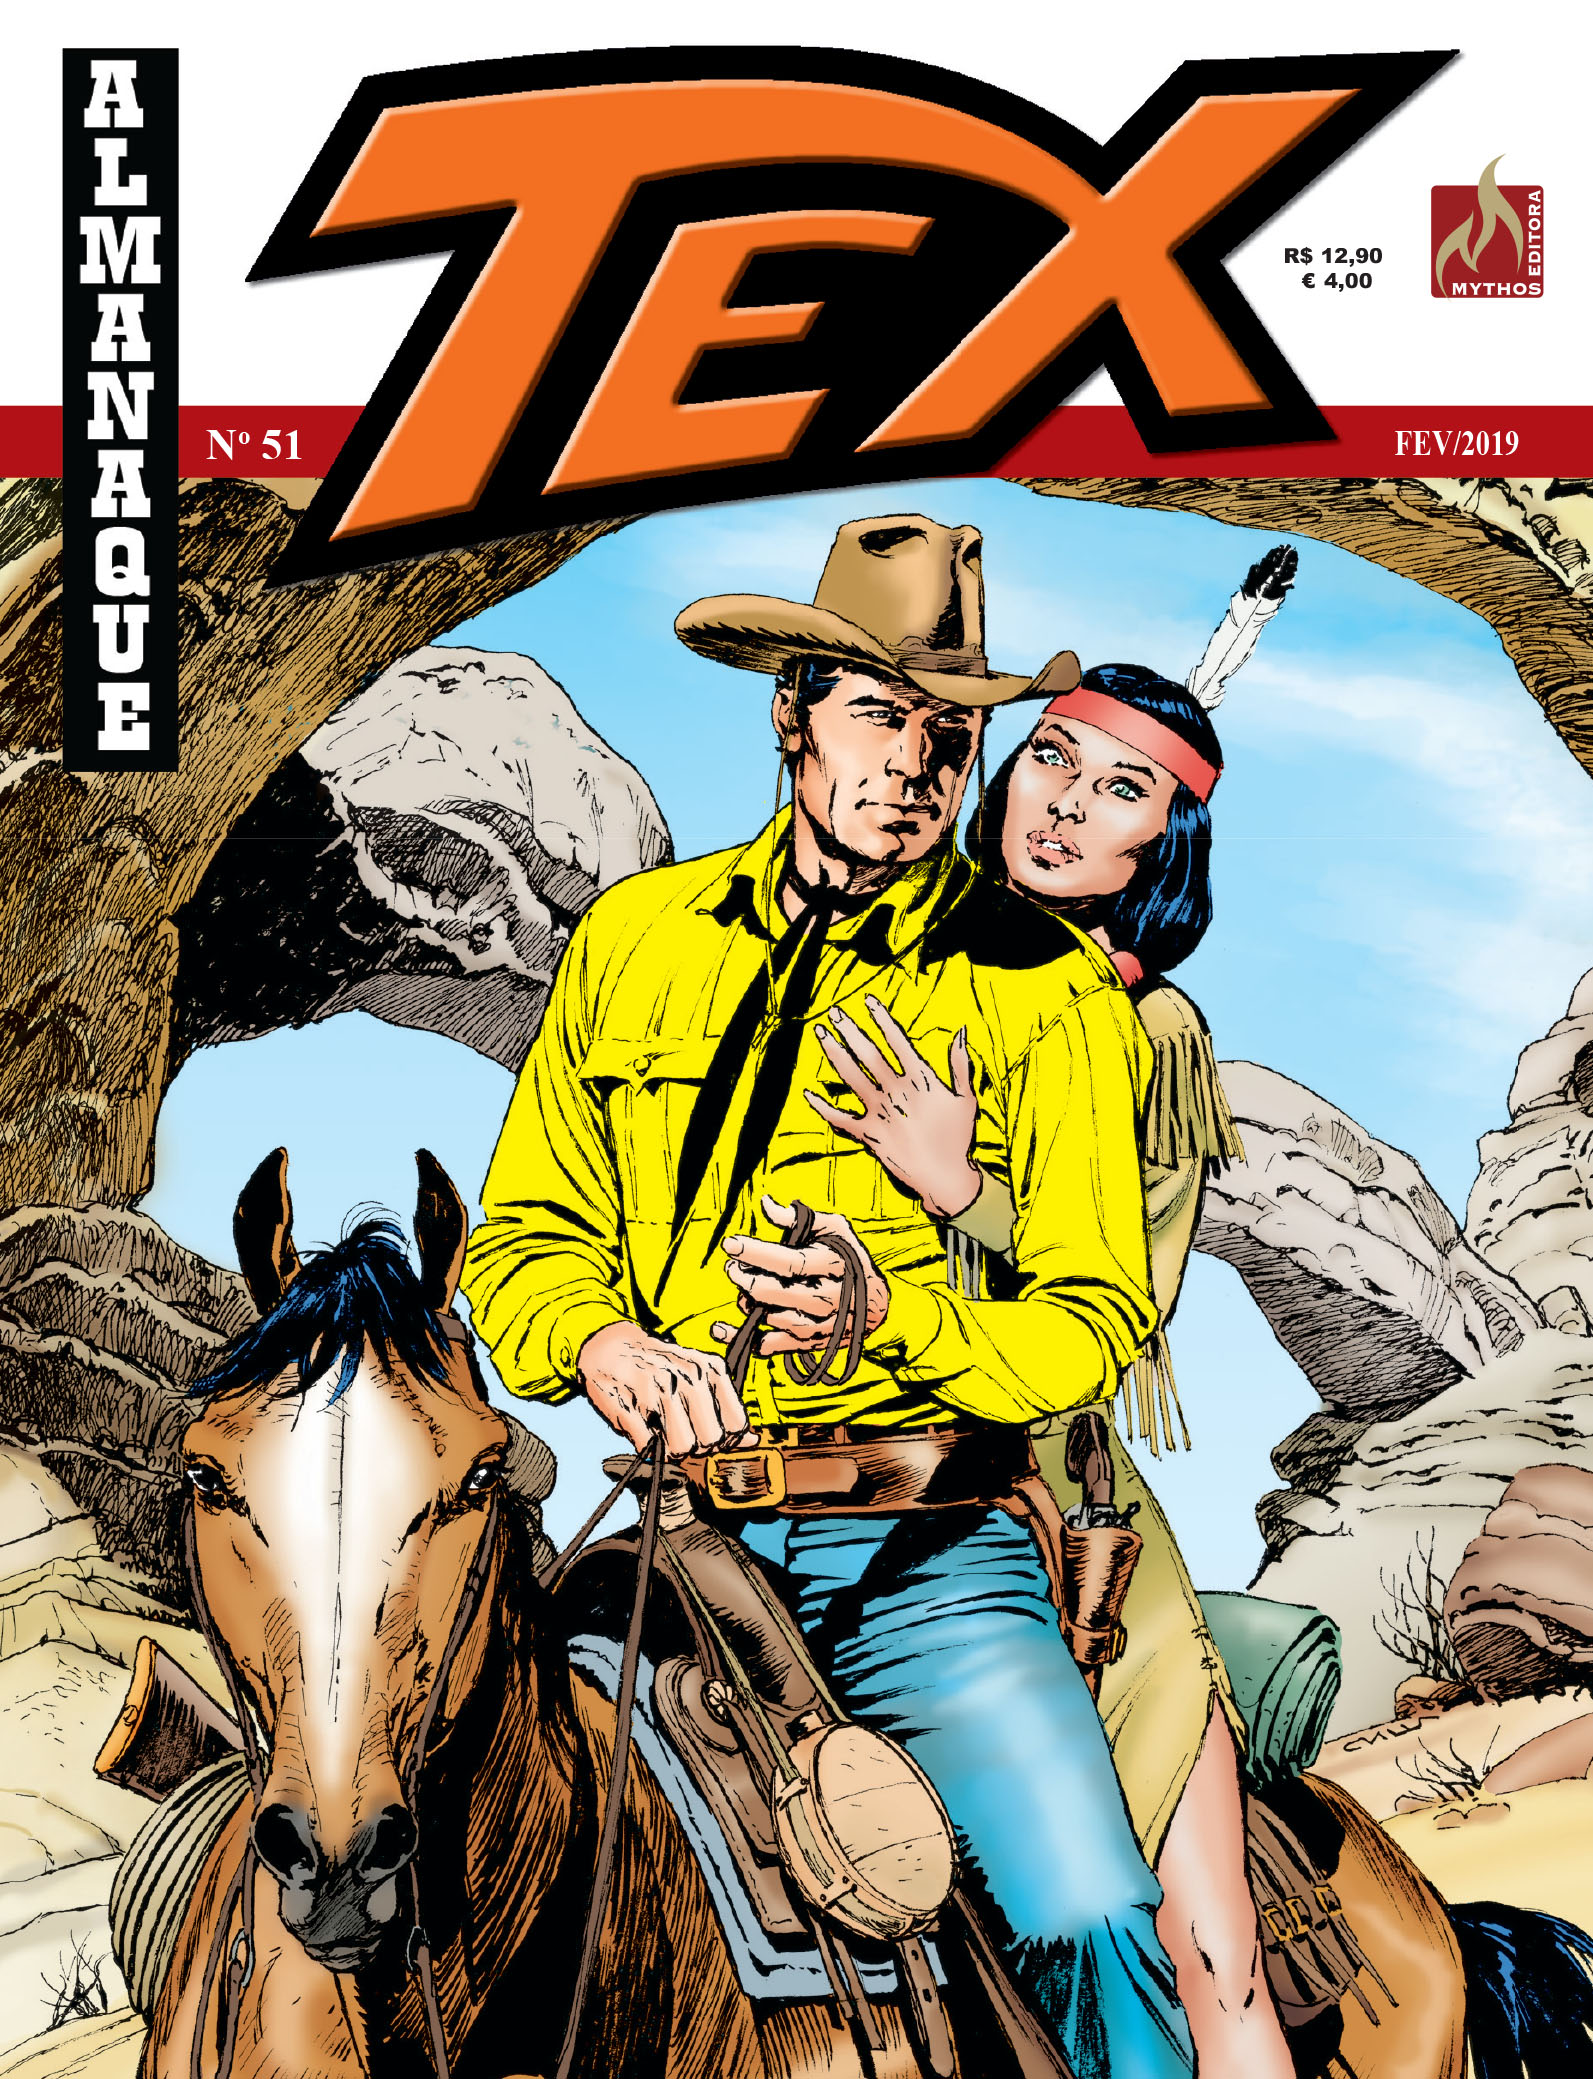 TEX ALMANAQUE Nº 051